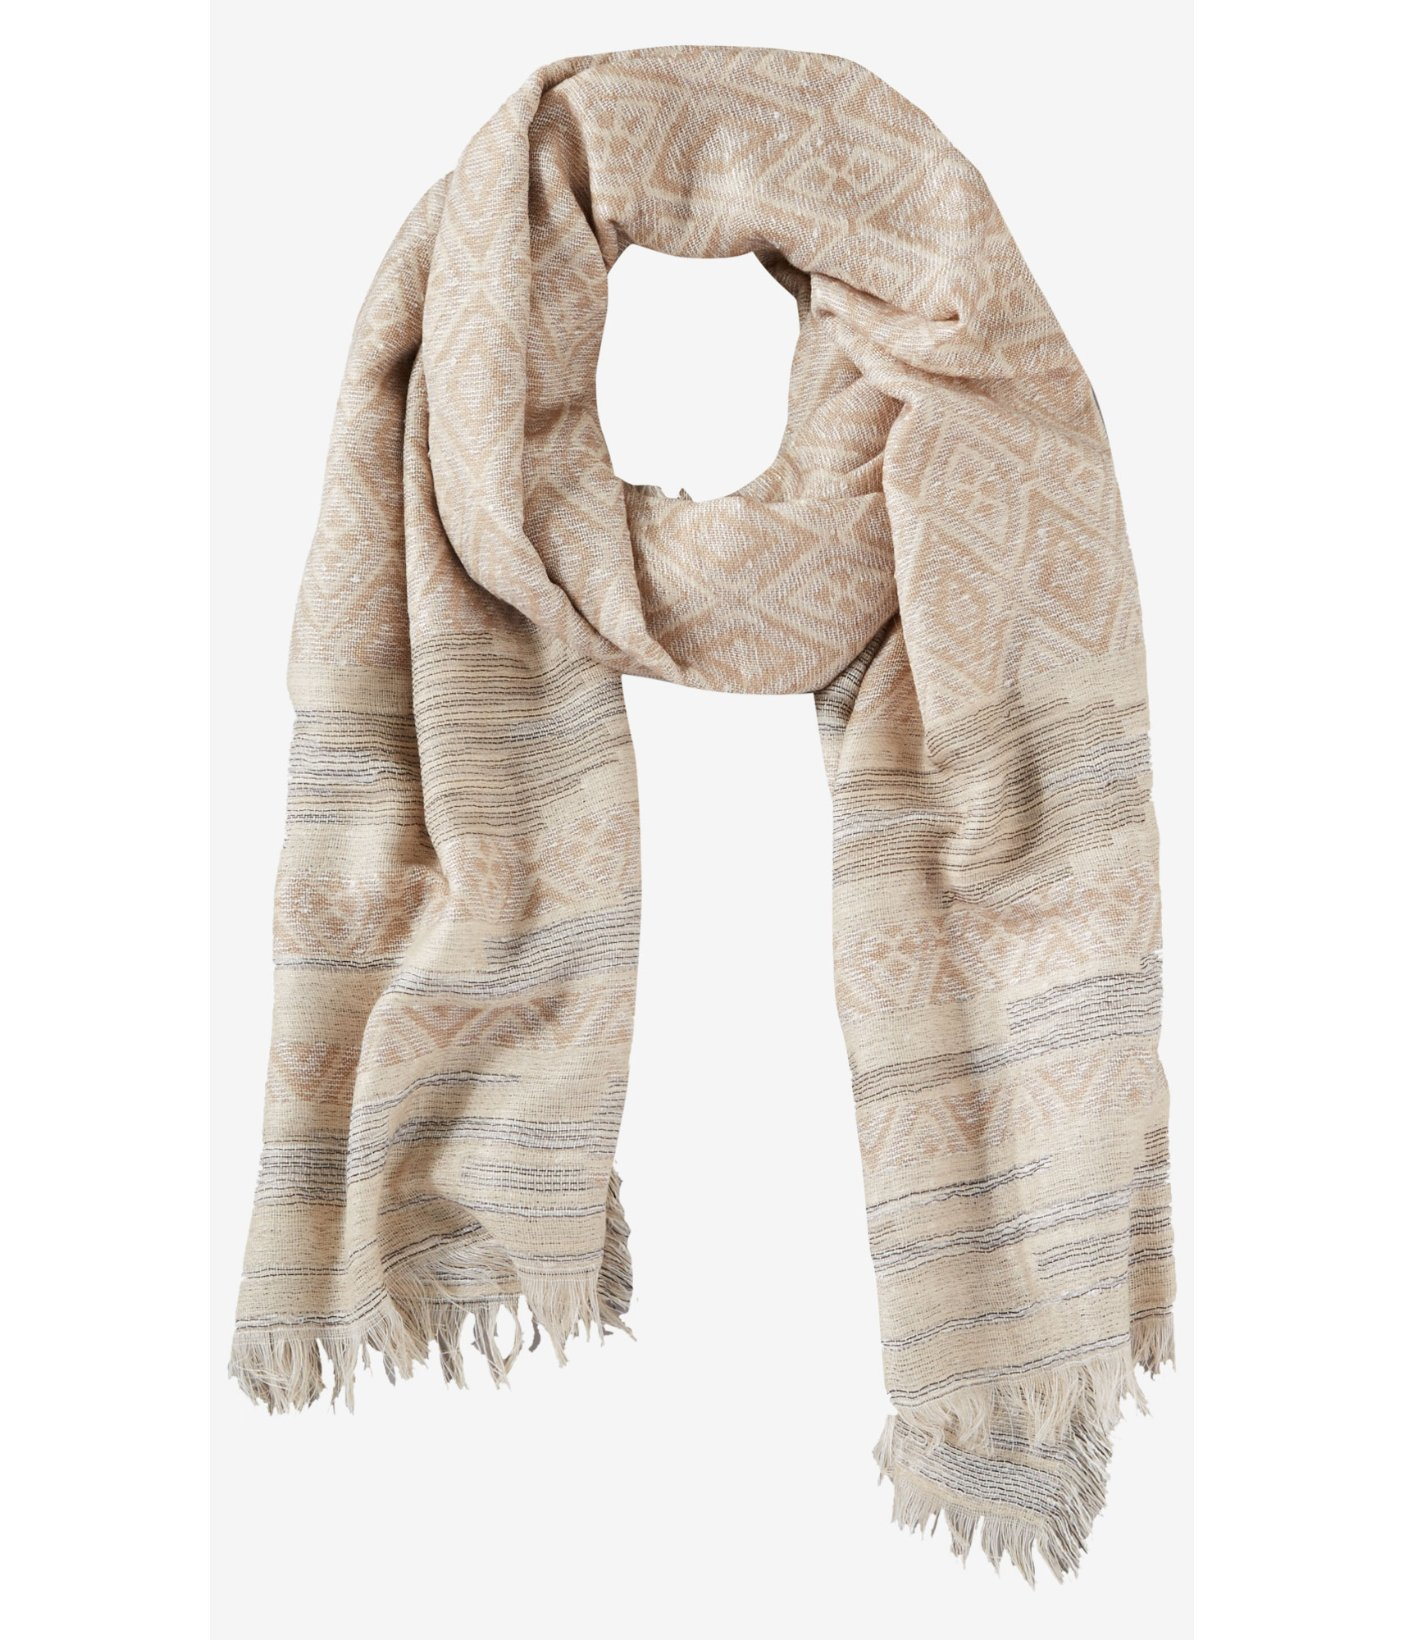 1d40f97555d91 Lyst - Express Tan Geo Print Oversized Oblong Blanket Scarf in Natural